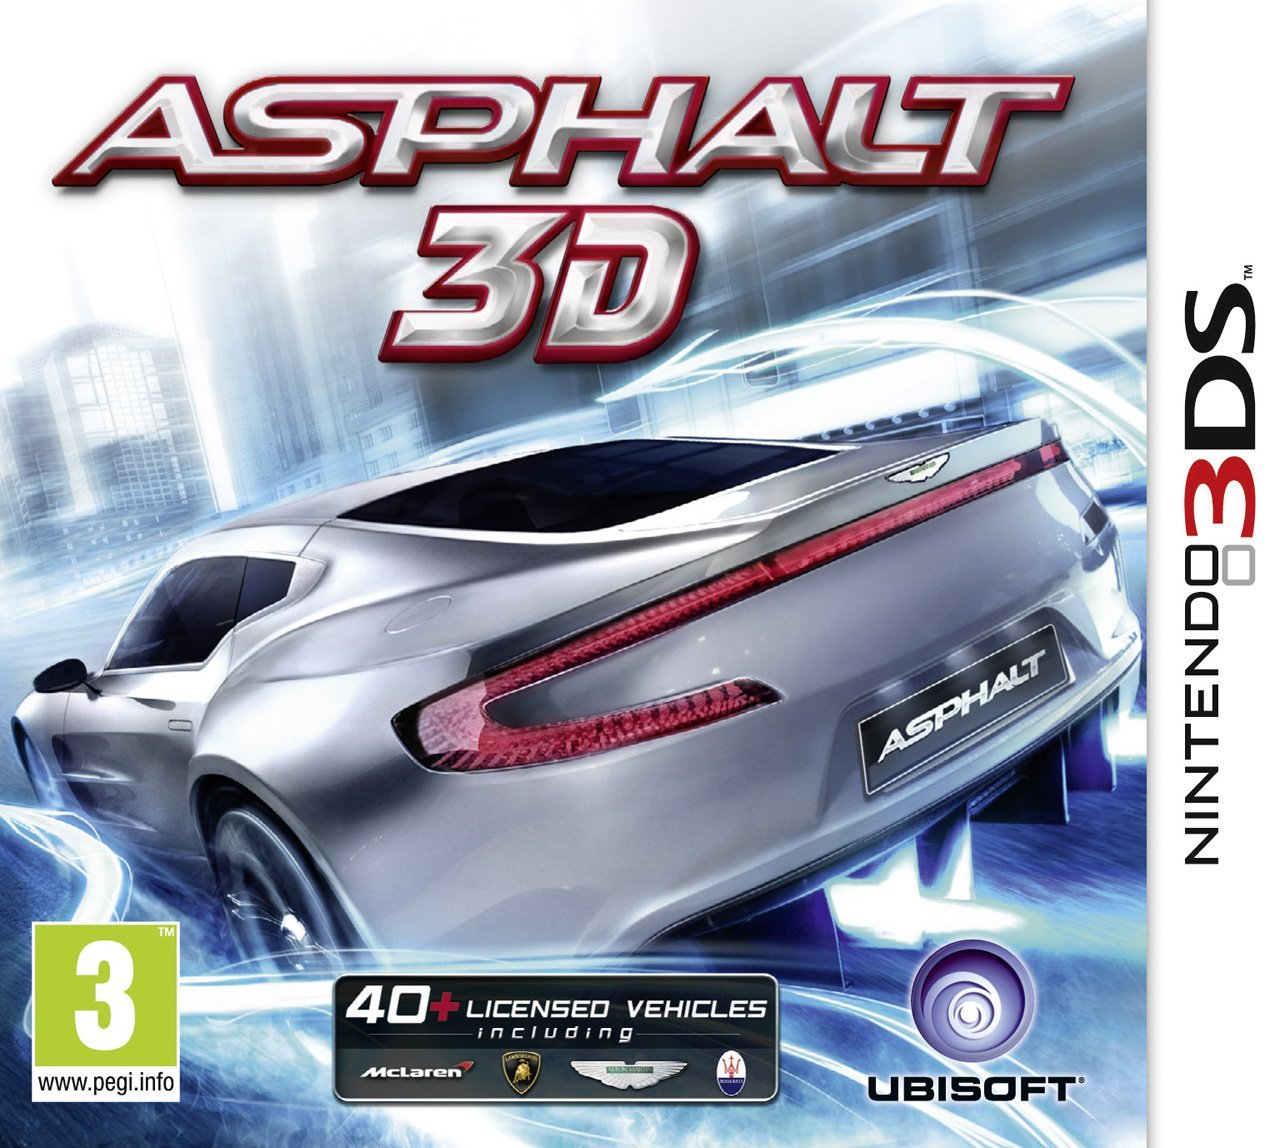 asphalt-3d-pack-shot